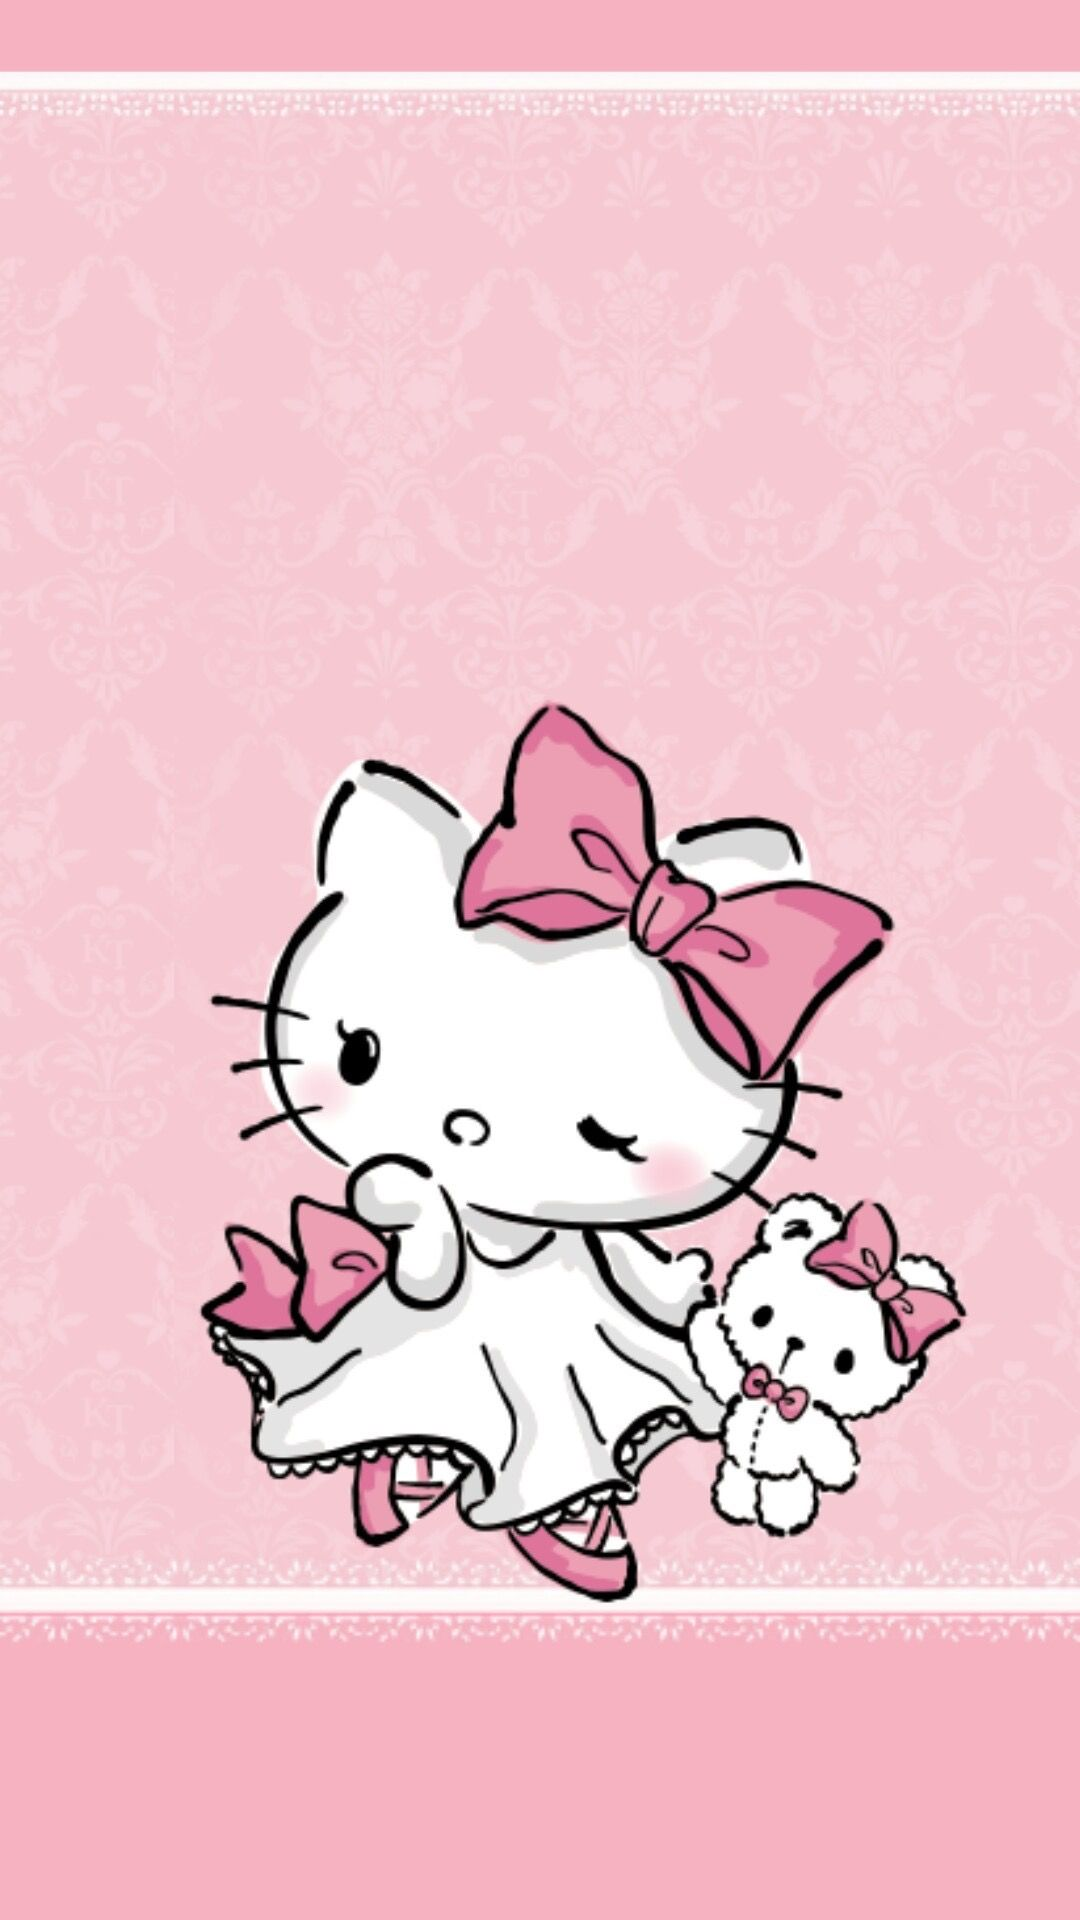 Hello Kitty And Friend Kawaii Cute And Pink Cosas De Hello